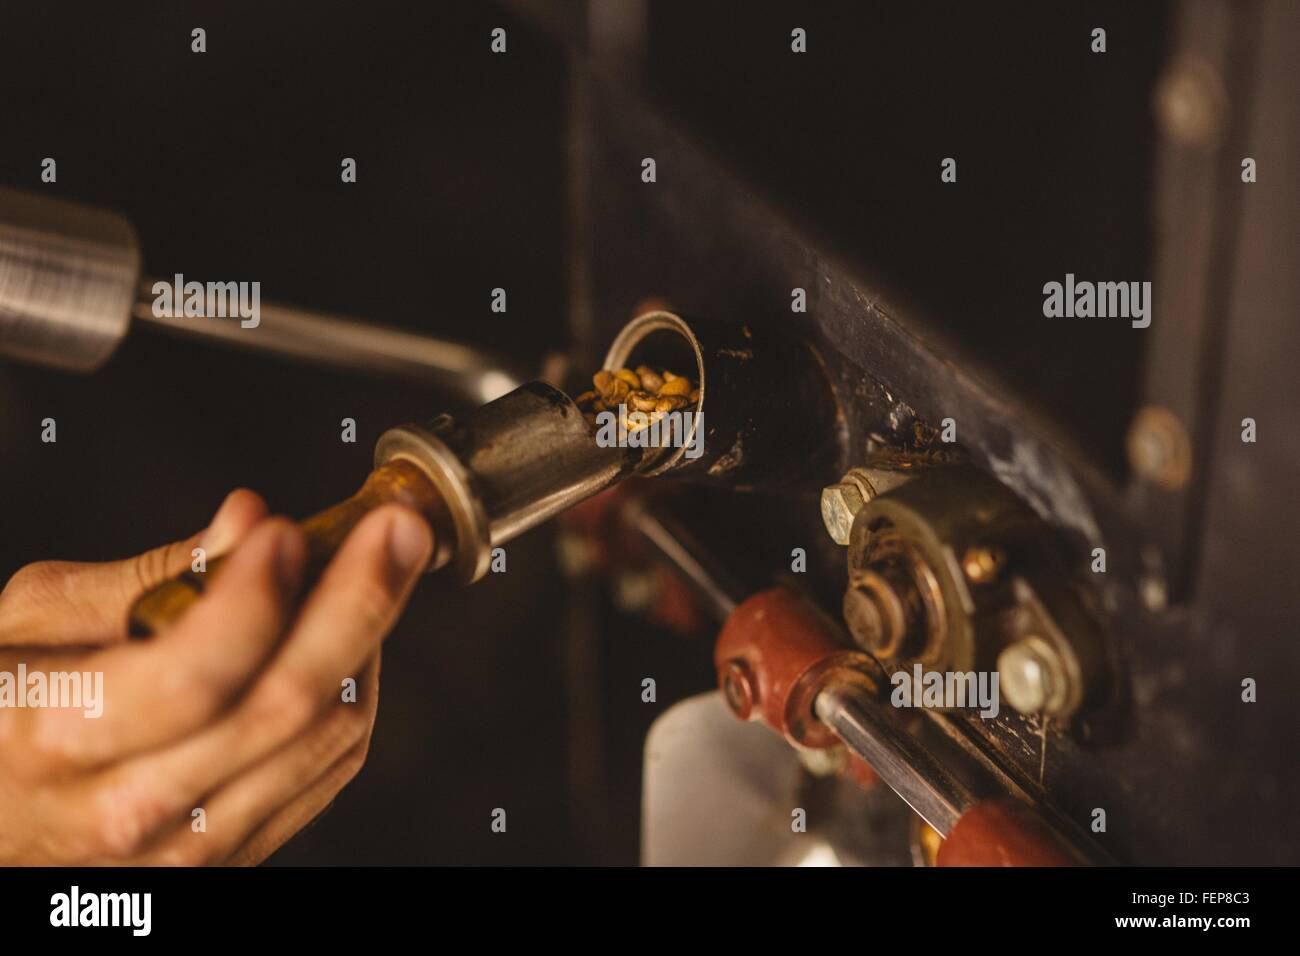 Man pouring coffee beans into coffee roaster, close-up - Stock Image